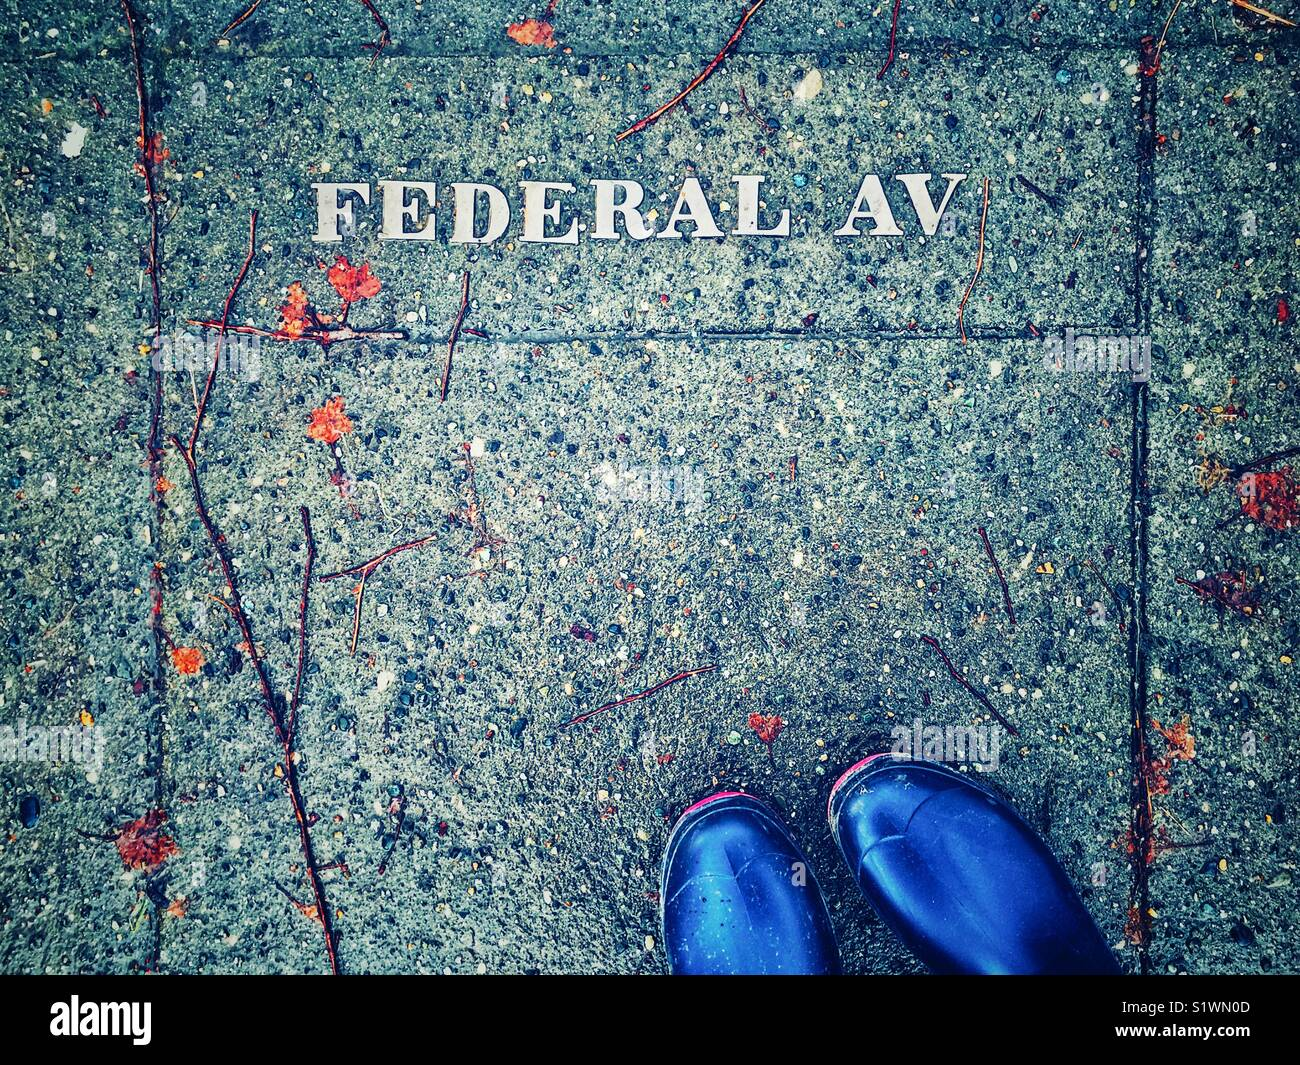 Feet in blue rain boots standing on a sidewalk with Federal Av metal letters in Seattle Washington State - Stock Image